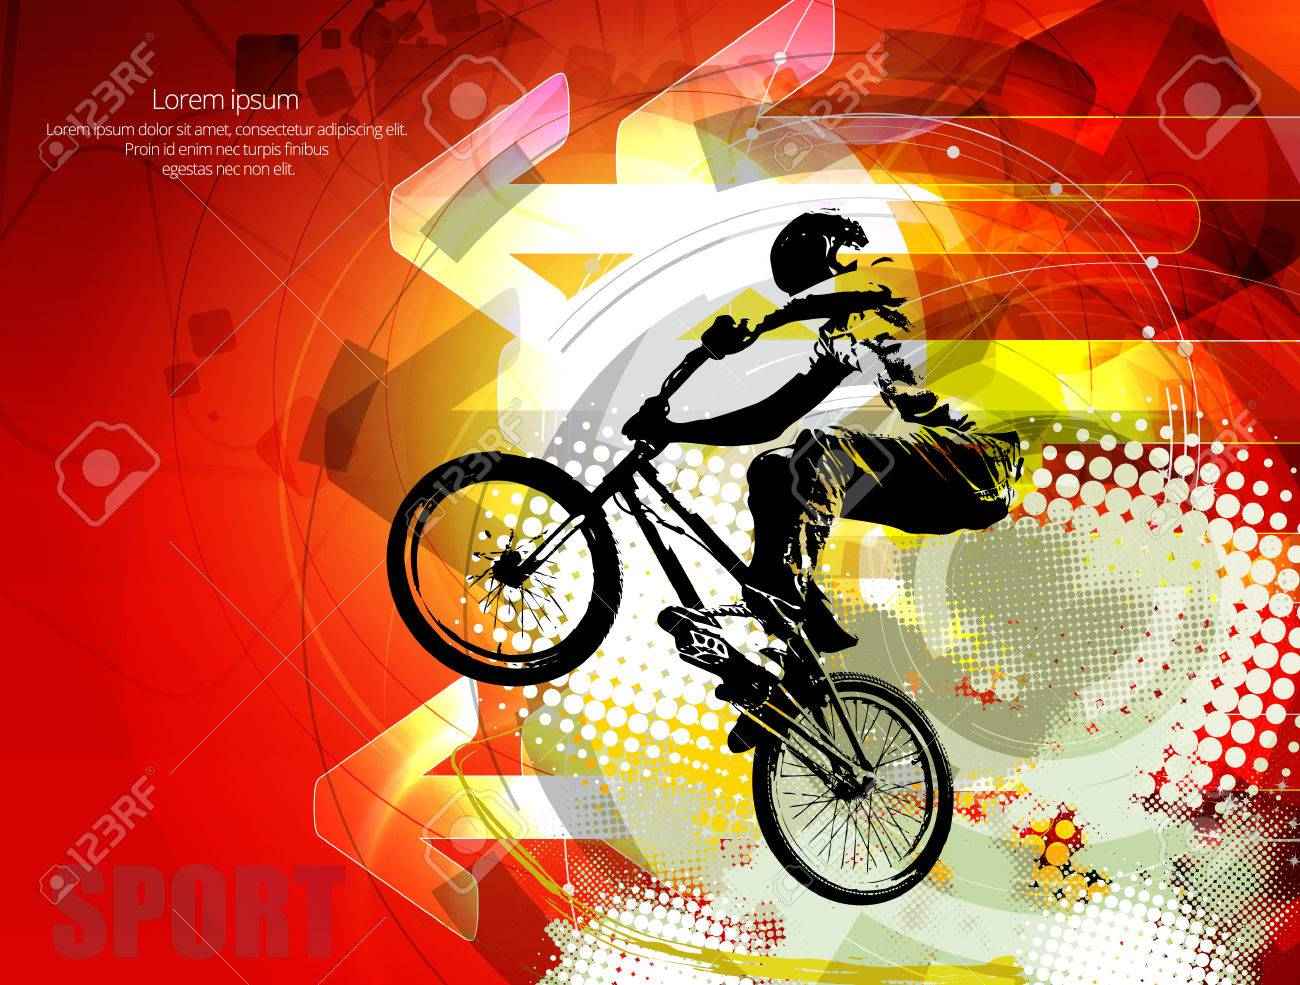 Vector image of BMX cyclist - 38706174